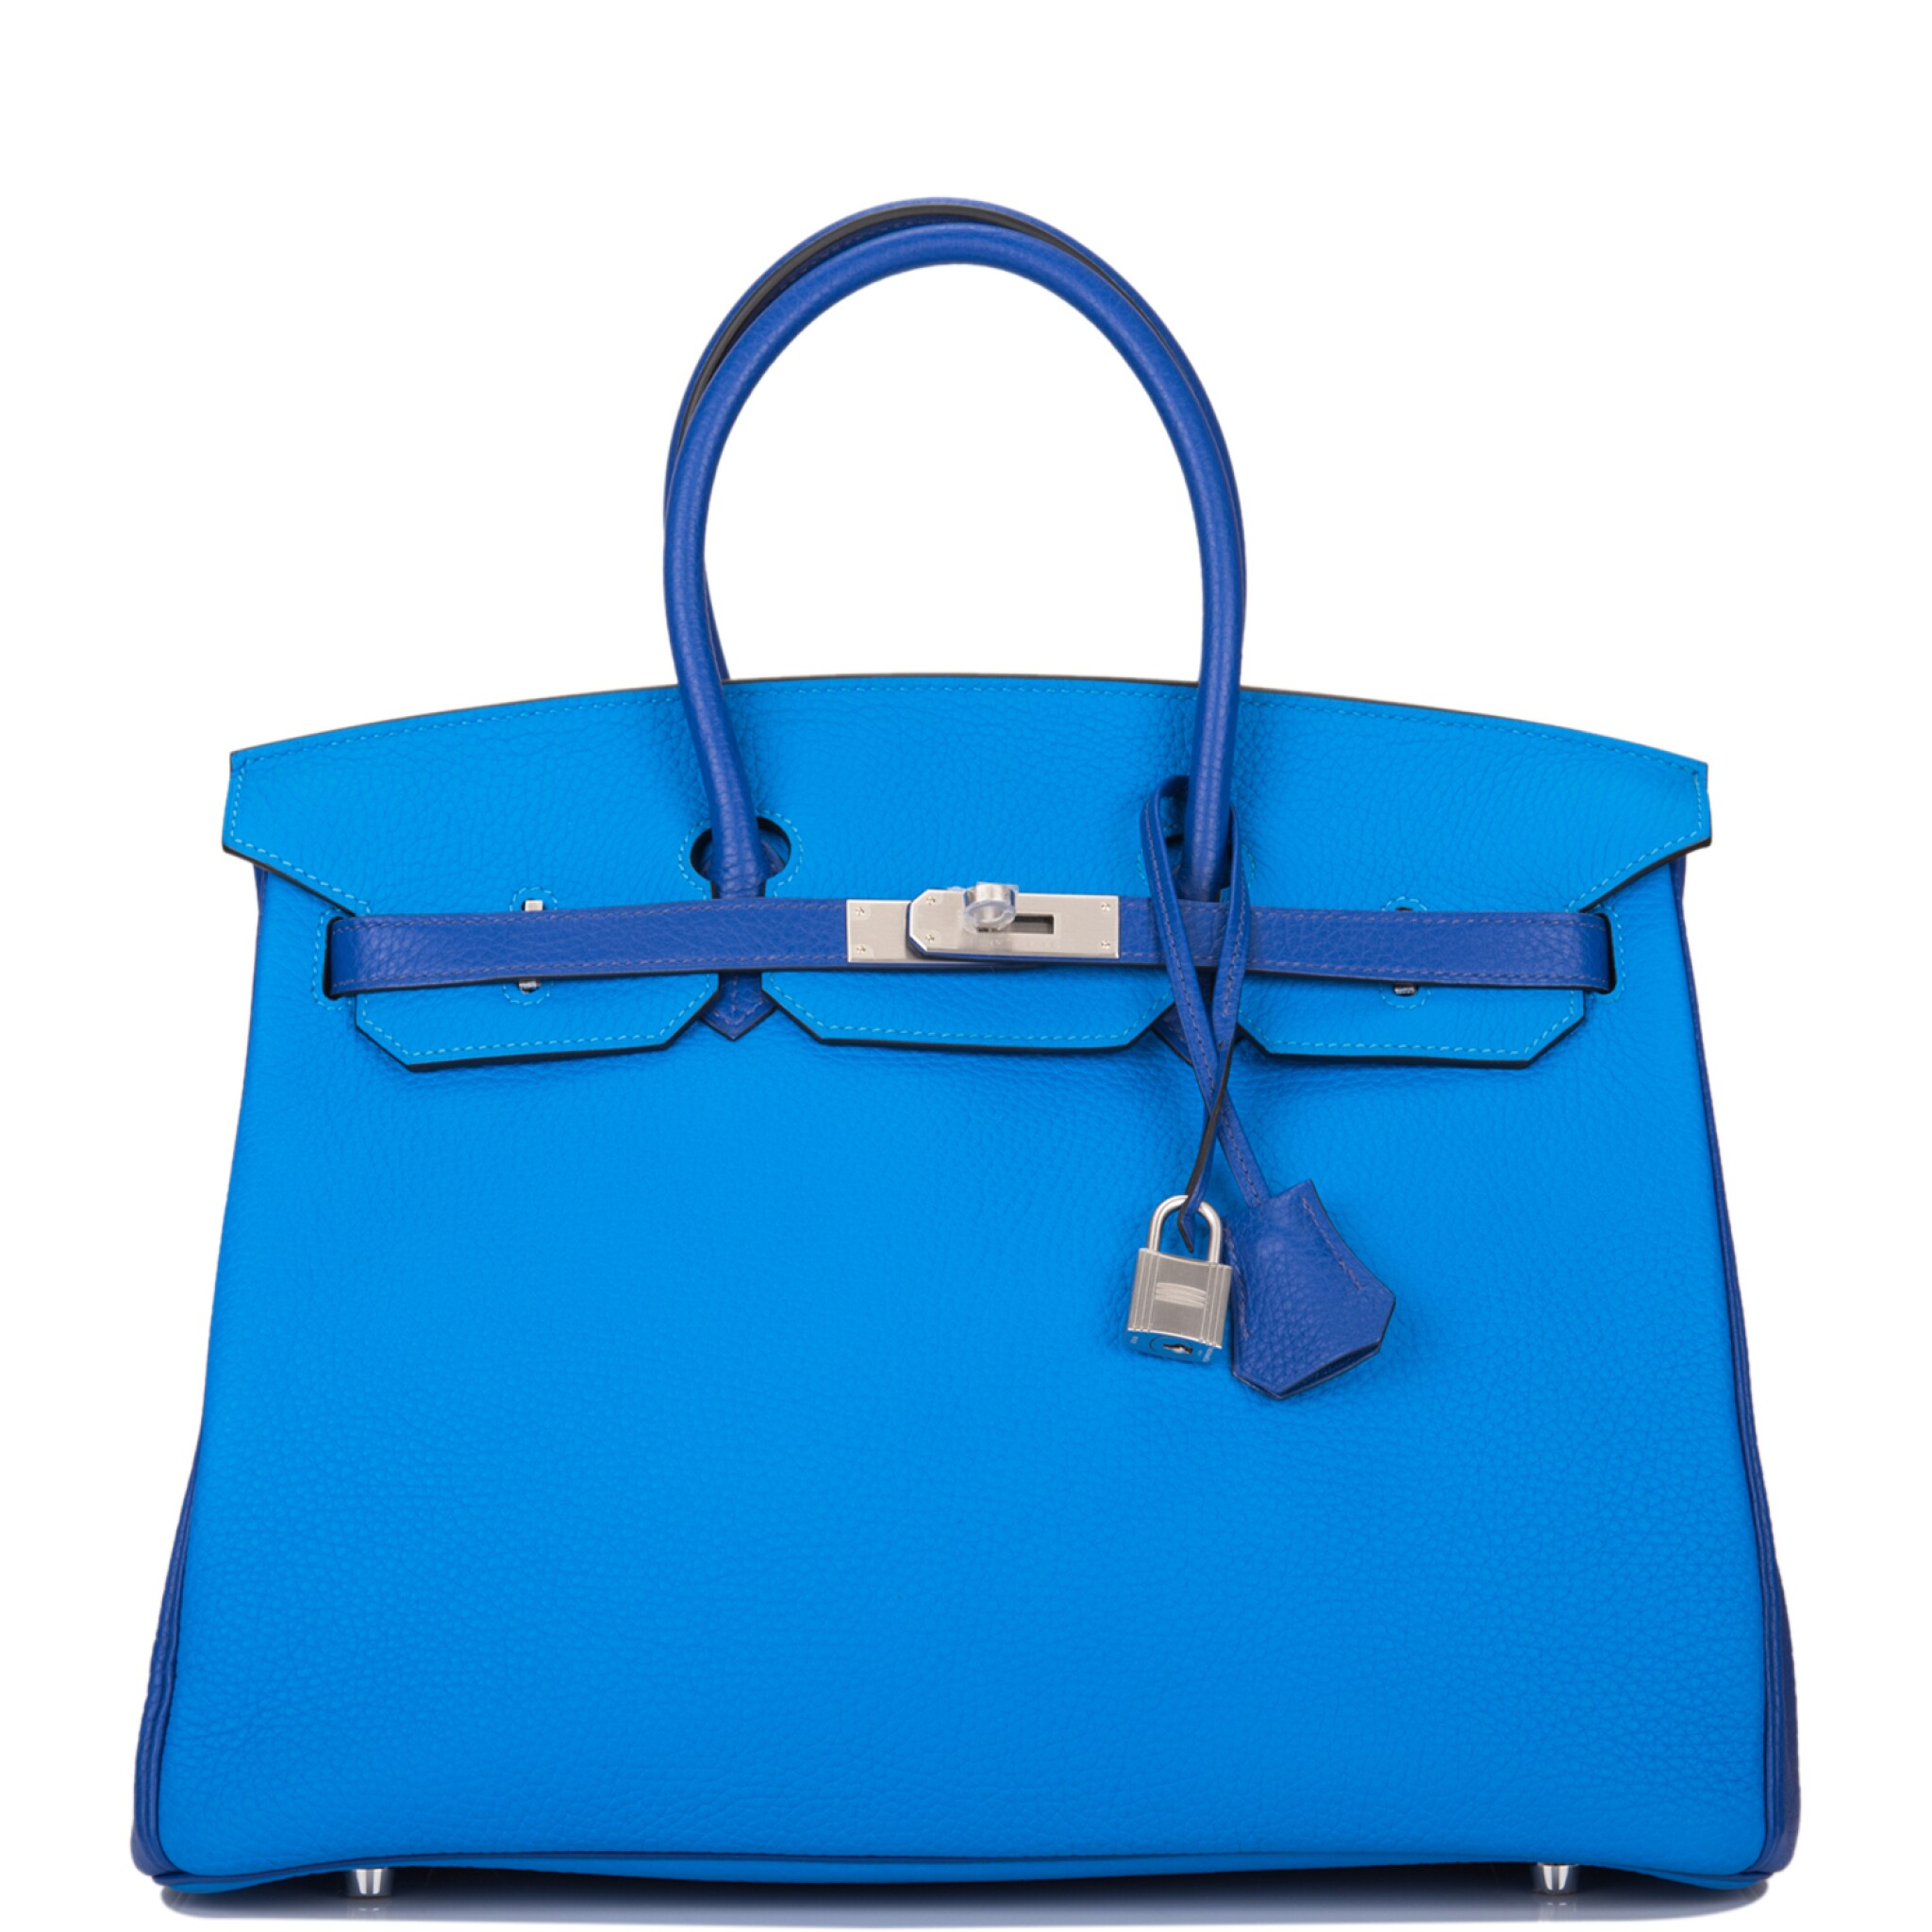 View full screen - View 1 of Lot 12. Hermès Horseshoe Stamp (HSS) Bicolor Bleu Electrique and Bleu Hydra 35cm of Clemence Leather with Brushed Palladium Hardware.